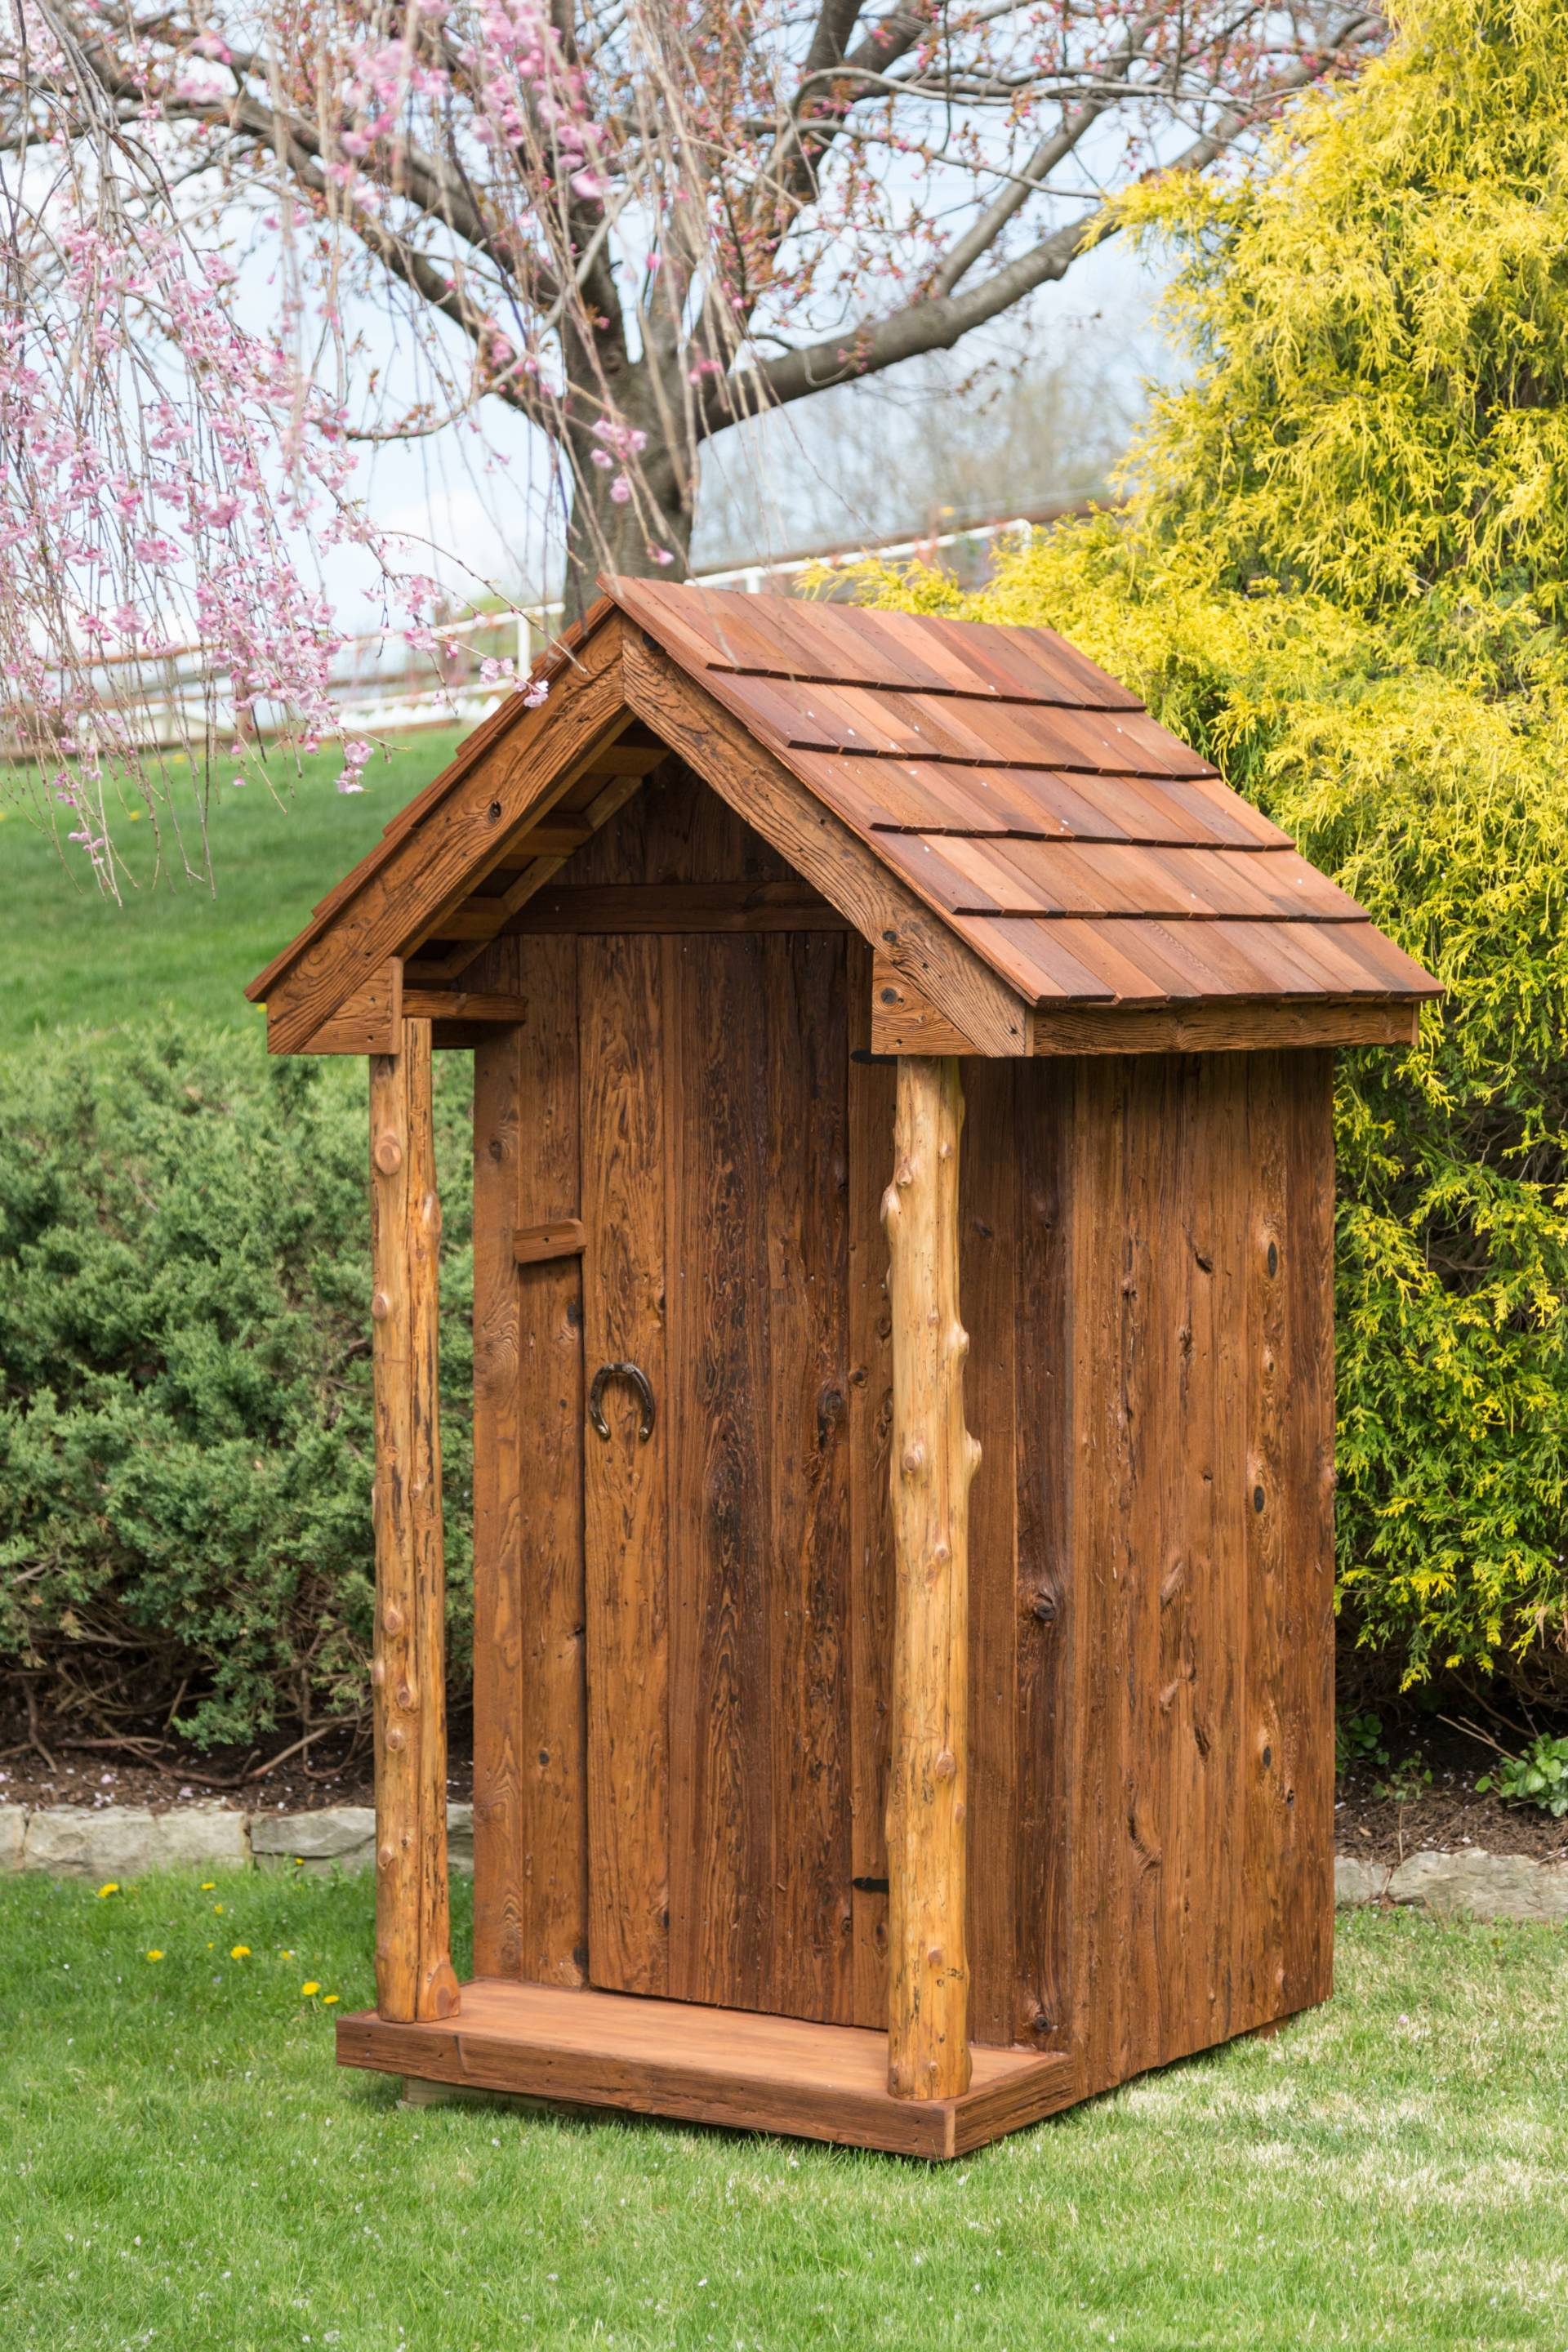 amish built outhouse with wooden shingles